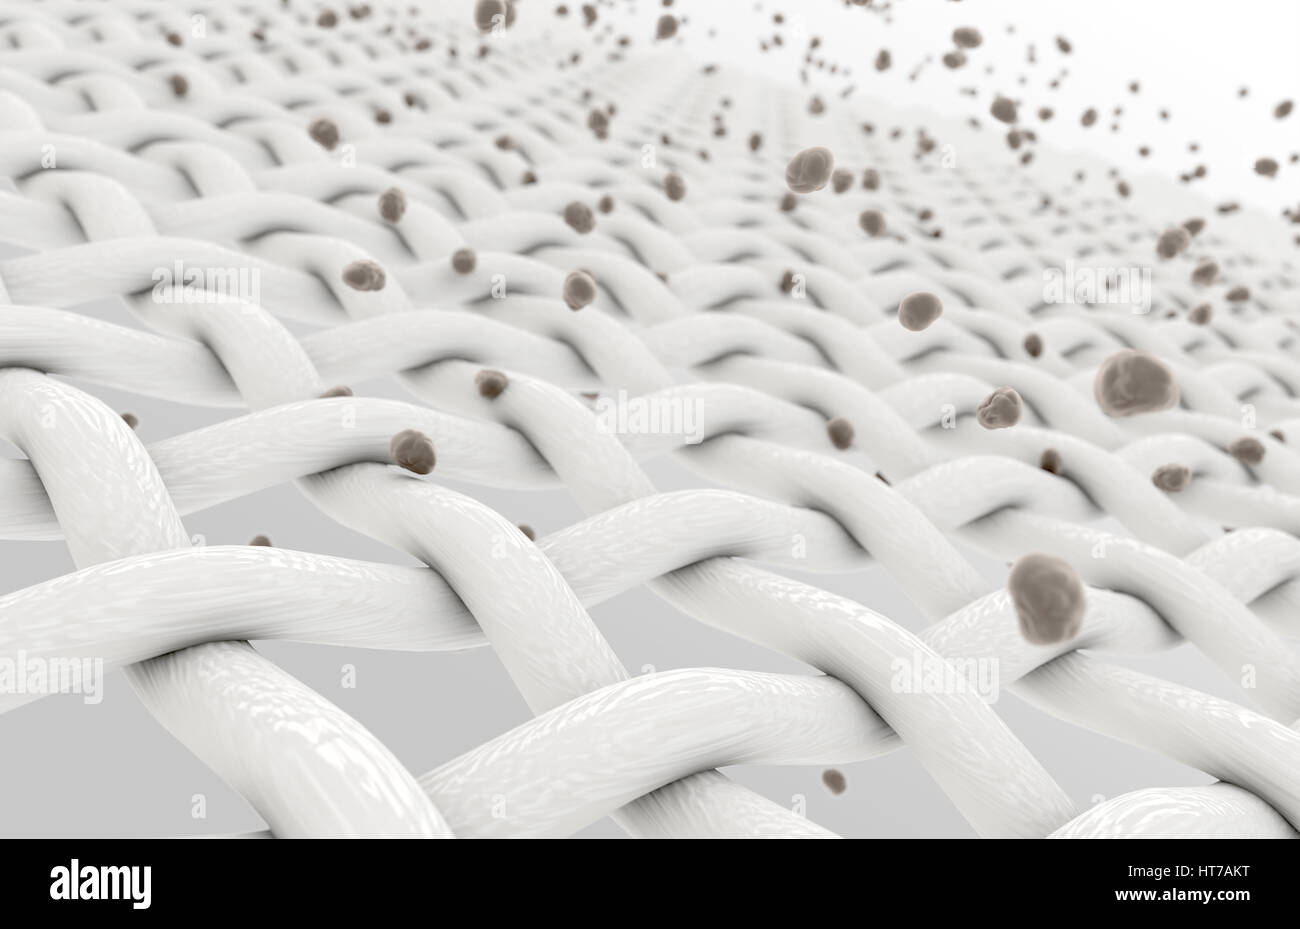 An extreme magnification of white individual fabric threads being penetrated by dirt particles on an isolated background - Stock Image